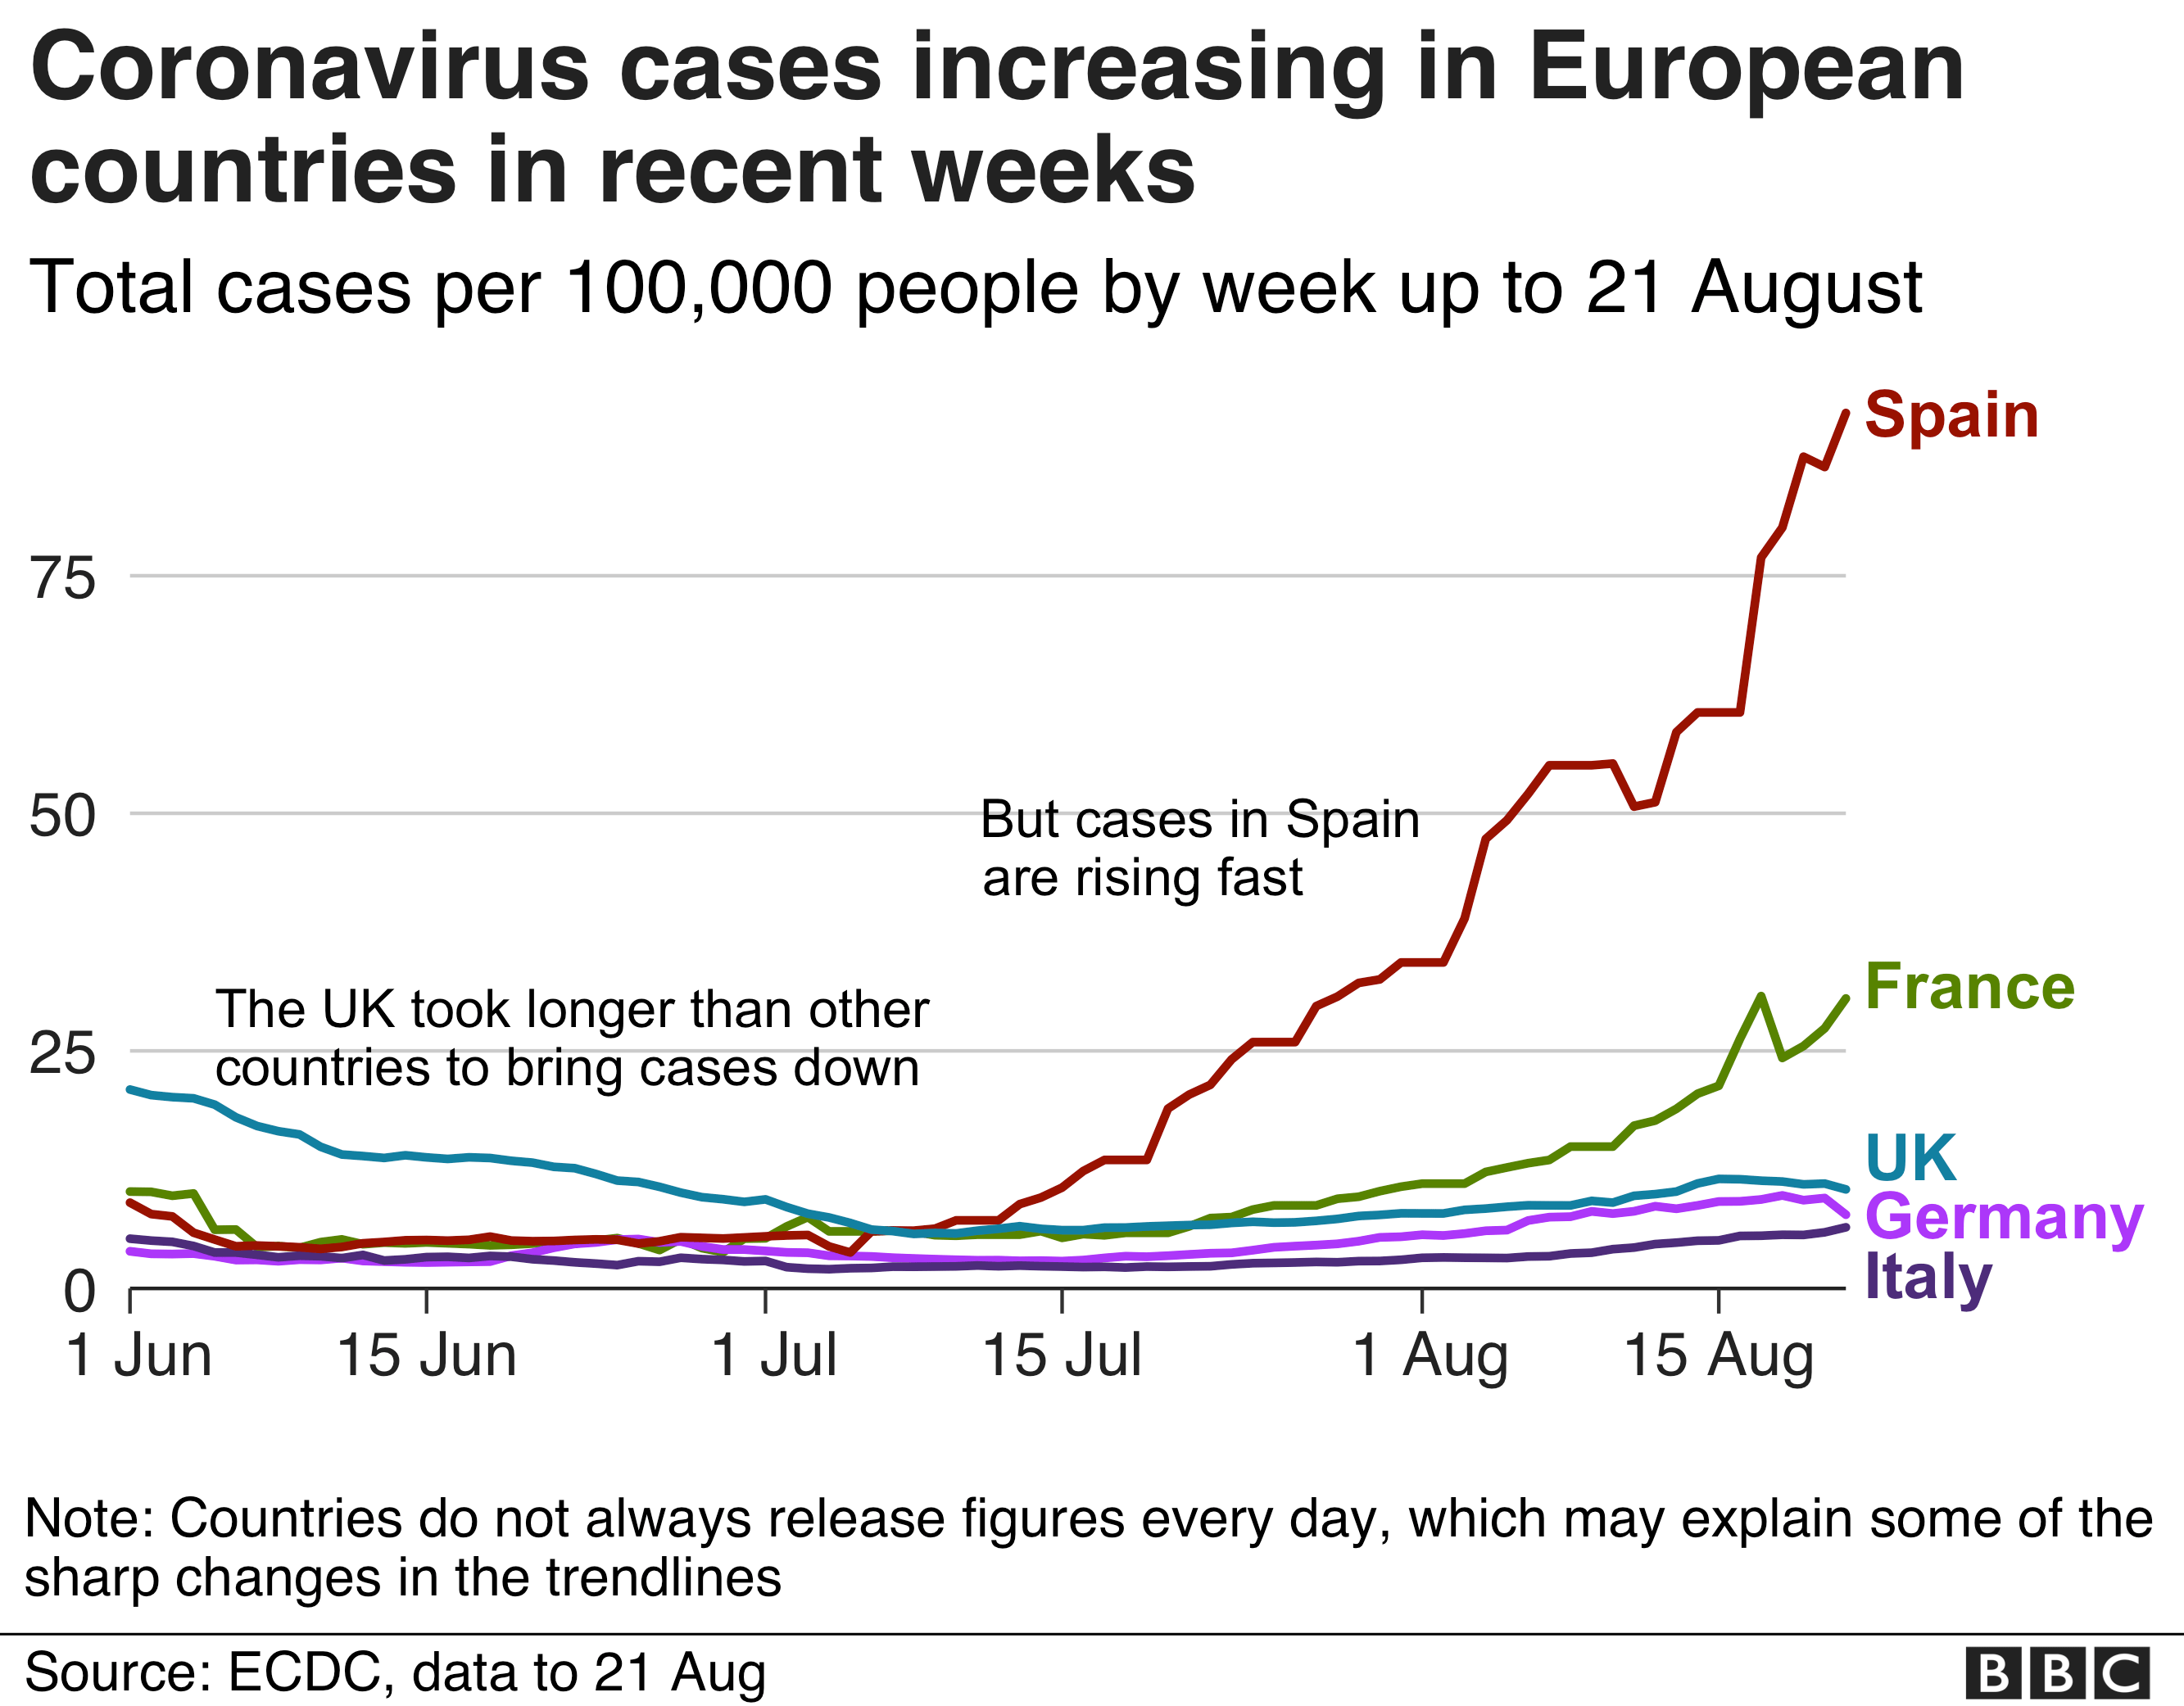 Chart showing cases per 100,000 people in Spain, Germany, Italy, France and the UK up to 21 August